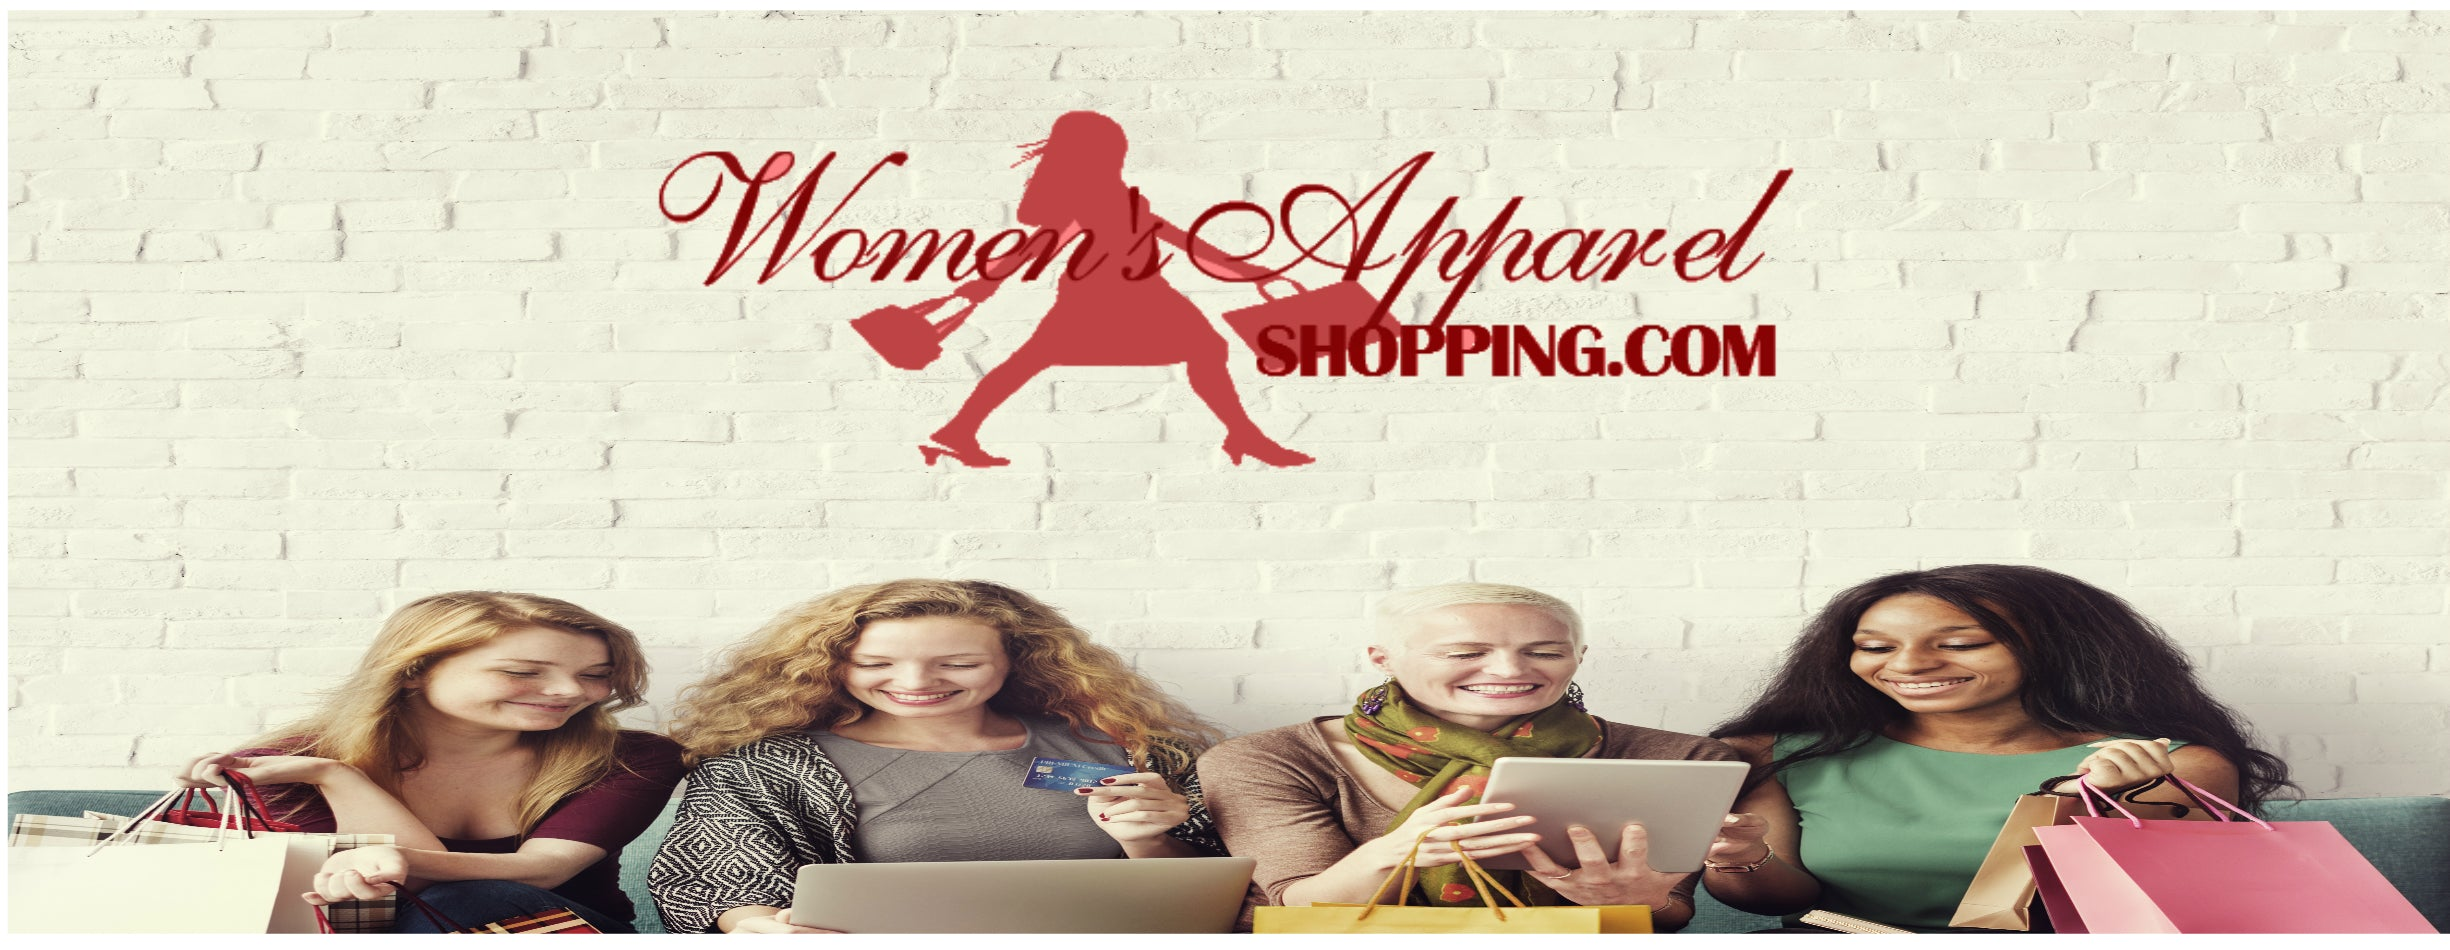 $10 - Women's Apparel Shopping (RED)